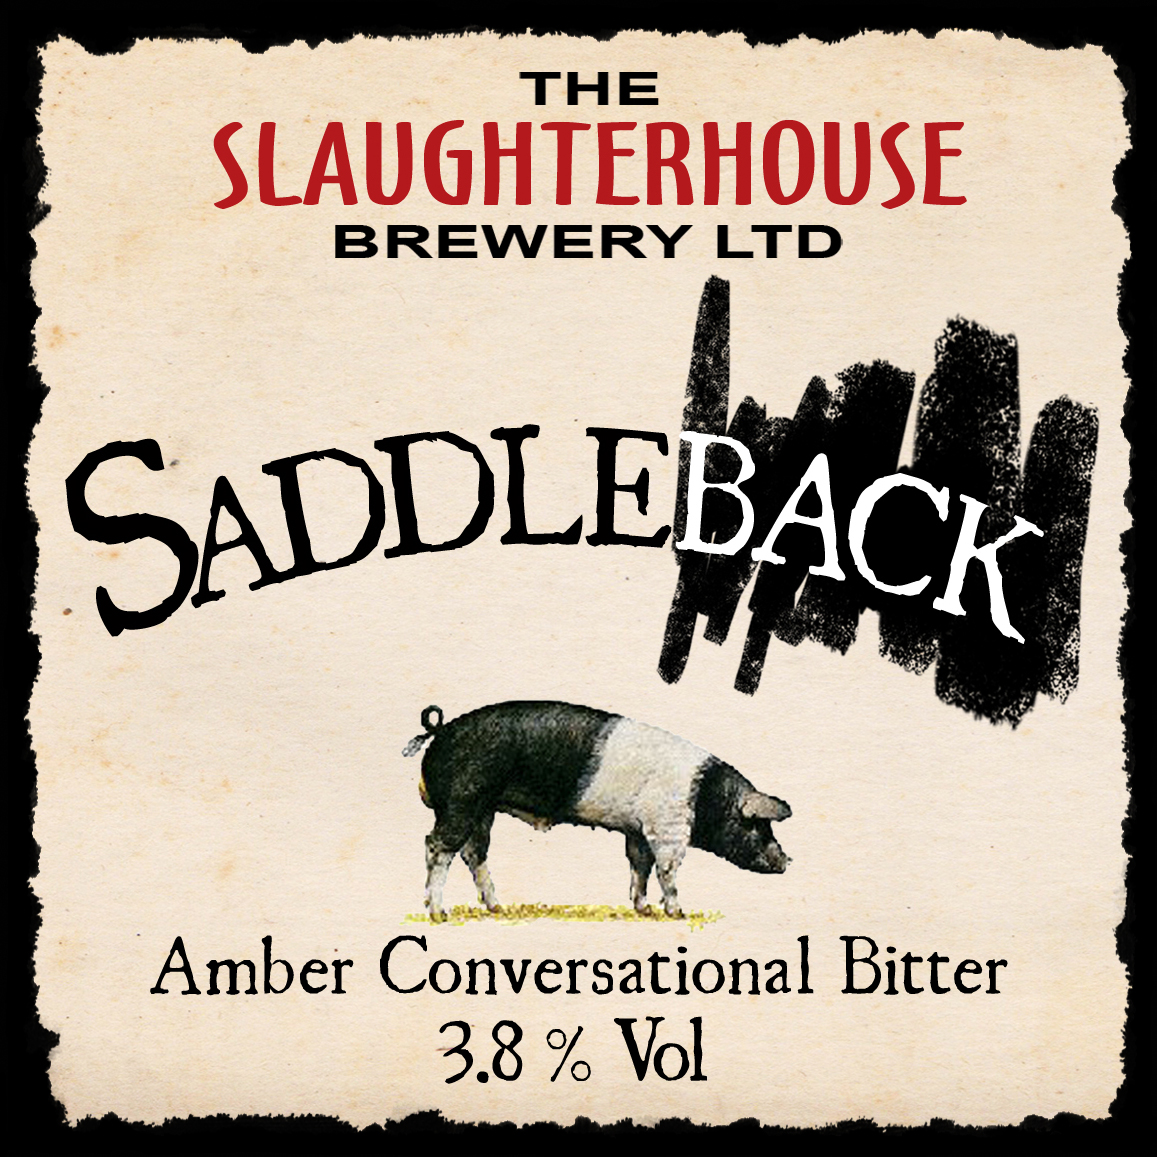 Saddleback Best Bitter from Slaughterhouse Brewery